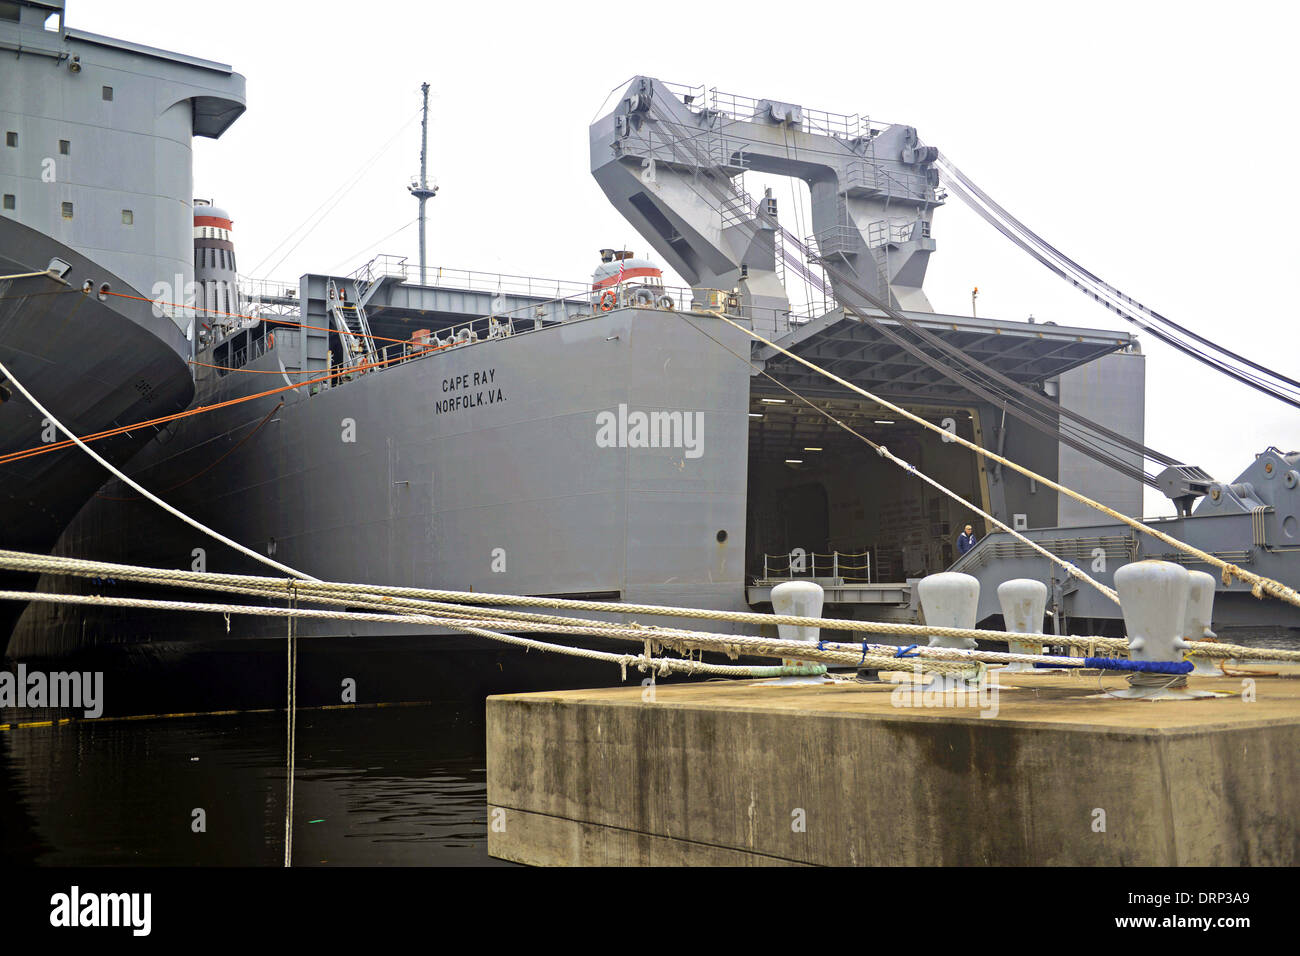 US Navy Ready Reserve Force vehicle transport ship Cape Ray docked at Norfolk Naval Shipyard before departing to Italy to begin processing Syrian chemical weapons January 2, 2014 in Portsmouth, Virginia. The Cape Ray has been fitted with equipment to destroy Syrian Chemical weapons at sea as part of a U.N. agreement. - Stock Image